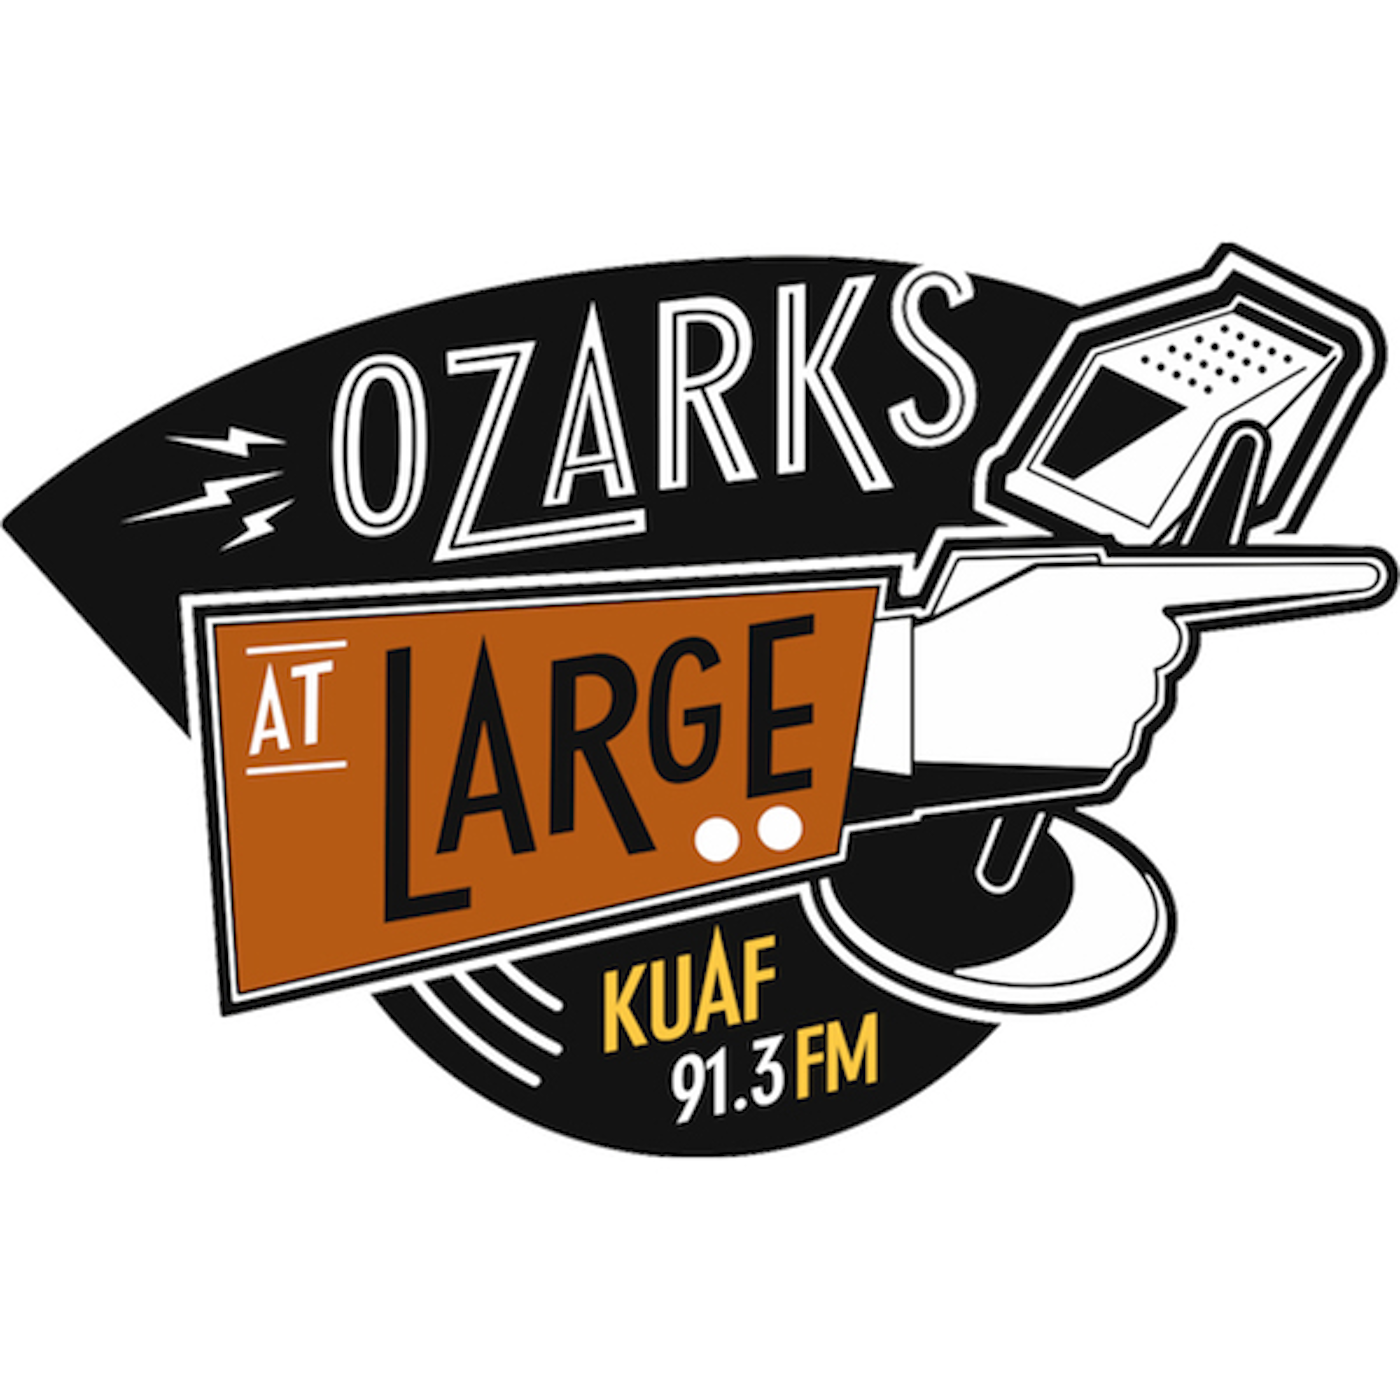 Ozarks at Large Stories